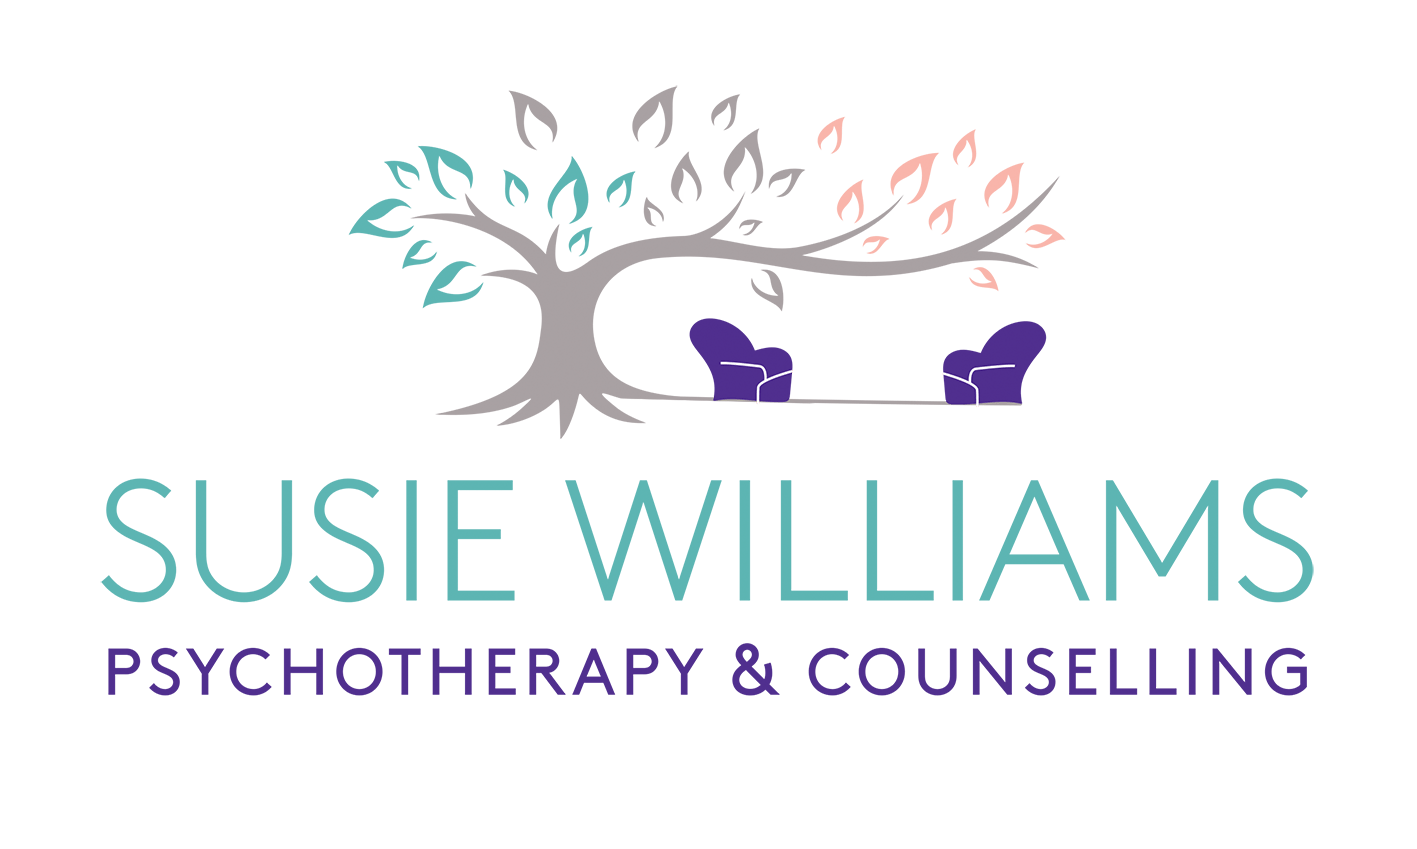 Susie Williams Psychotherapy